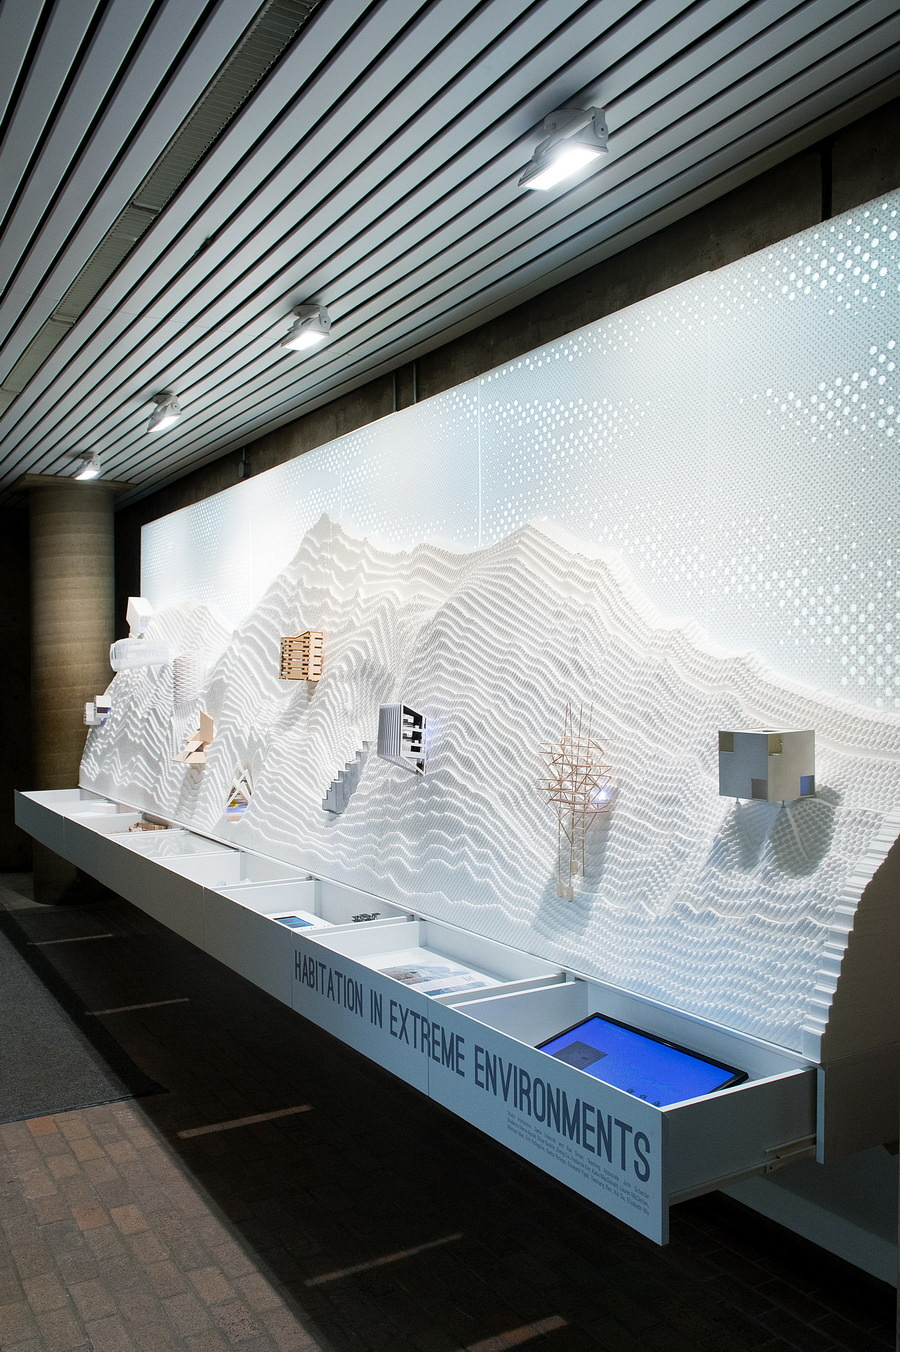 """""""Habitation in Extreme Environments: Alpine Shelter"""" at the Harvard Graduate School of Design. Photo credit: Harvard GSD, photography courtesy Justin Knight"""